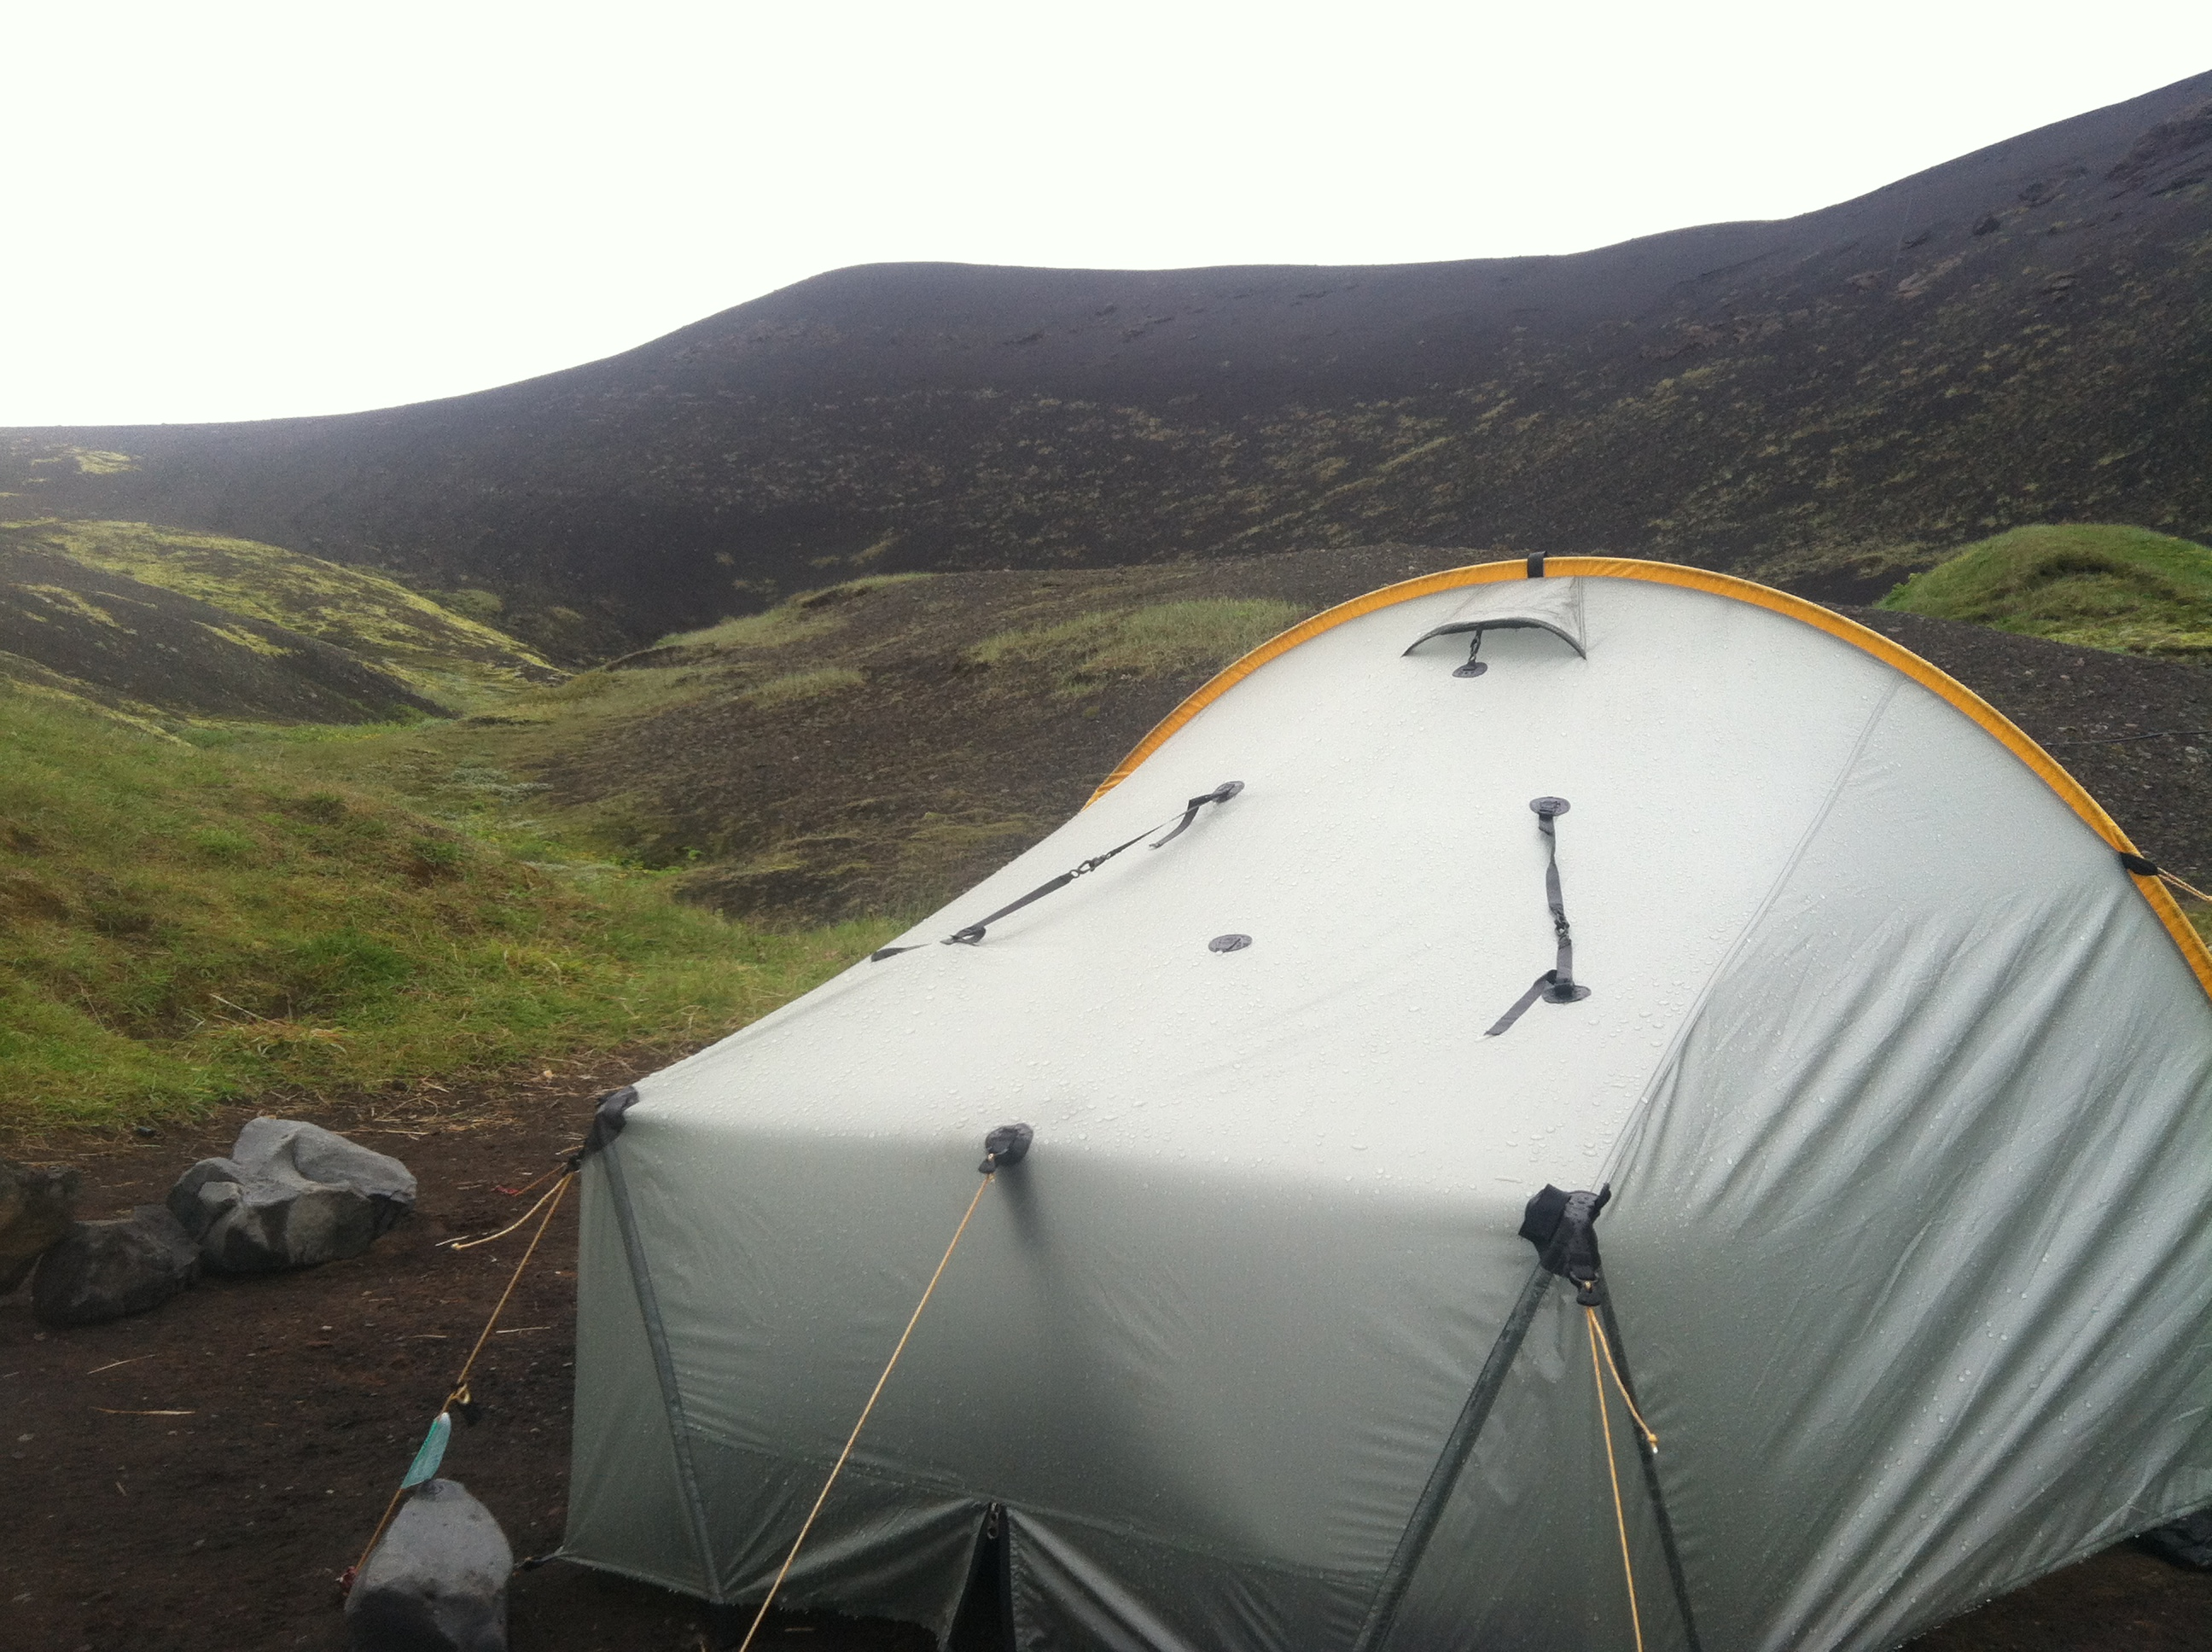 Photo of Tarptent Scarp 1 on Laugavegur trek